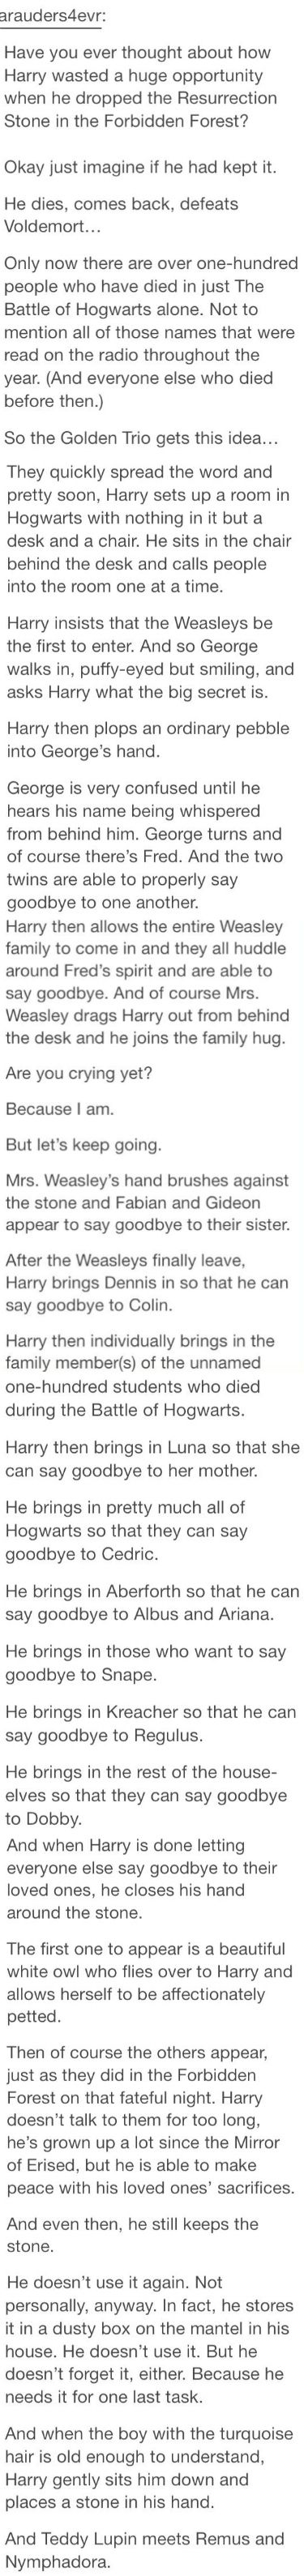 The Resurrection Stone was dangerous but this is heartbreaking omg